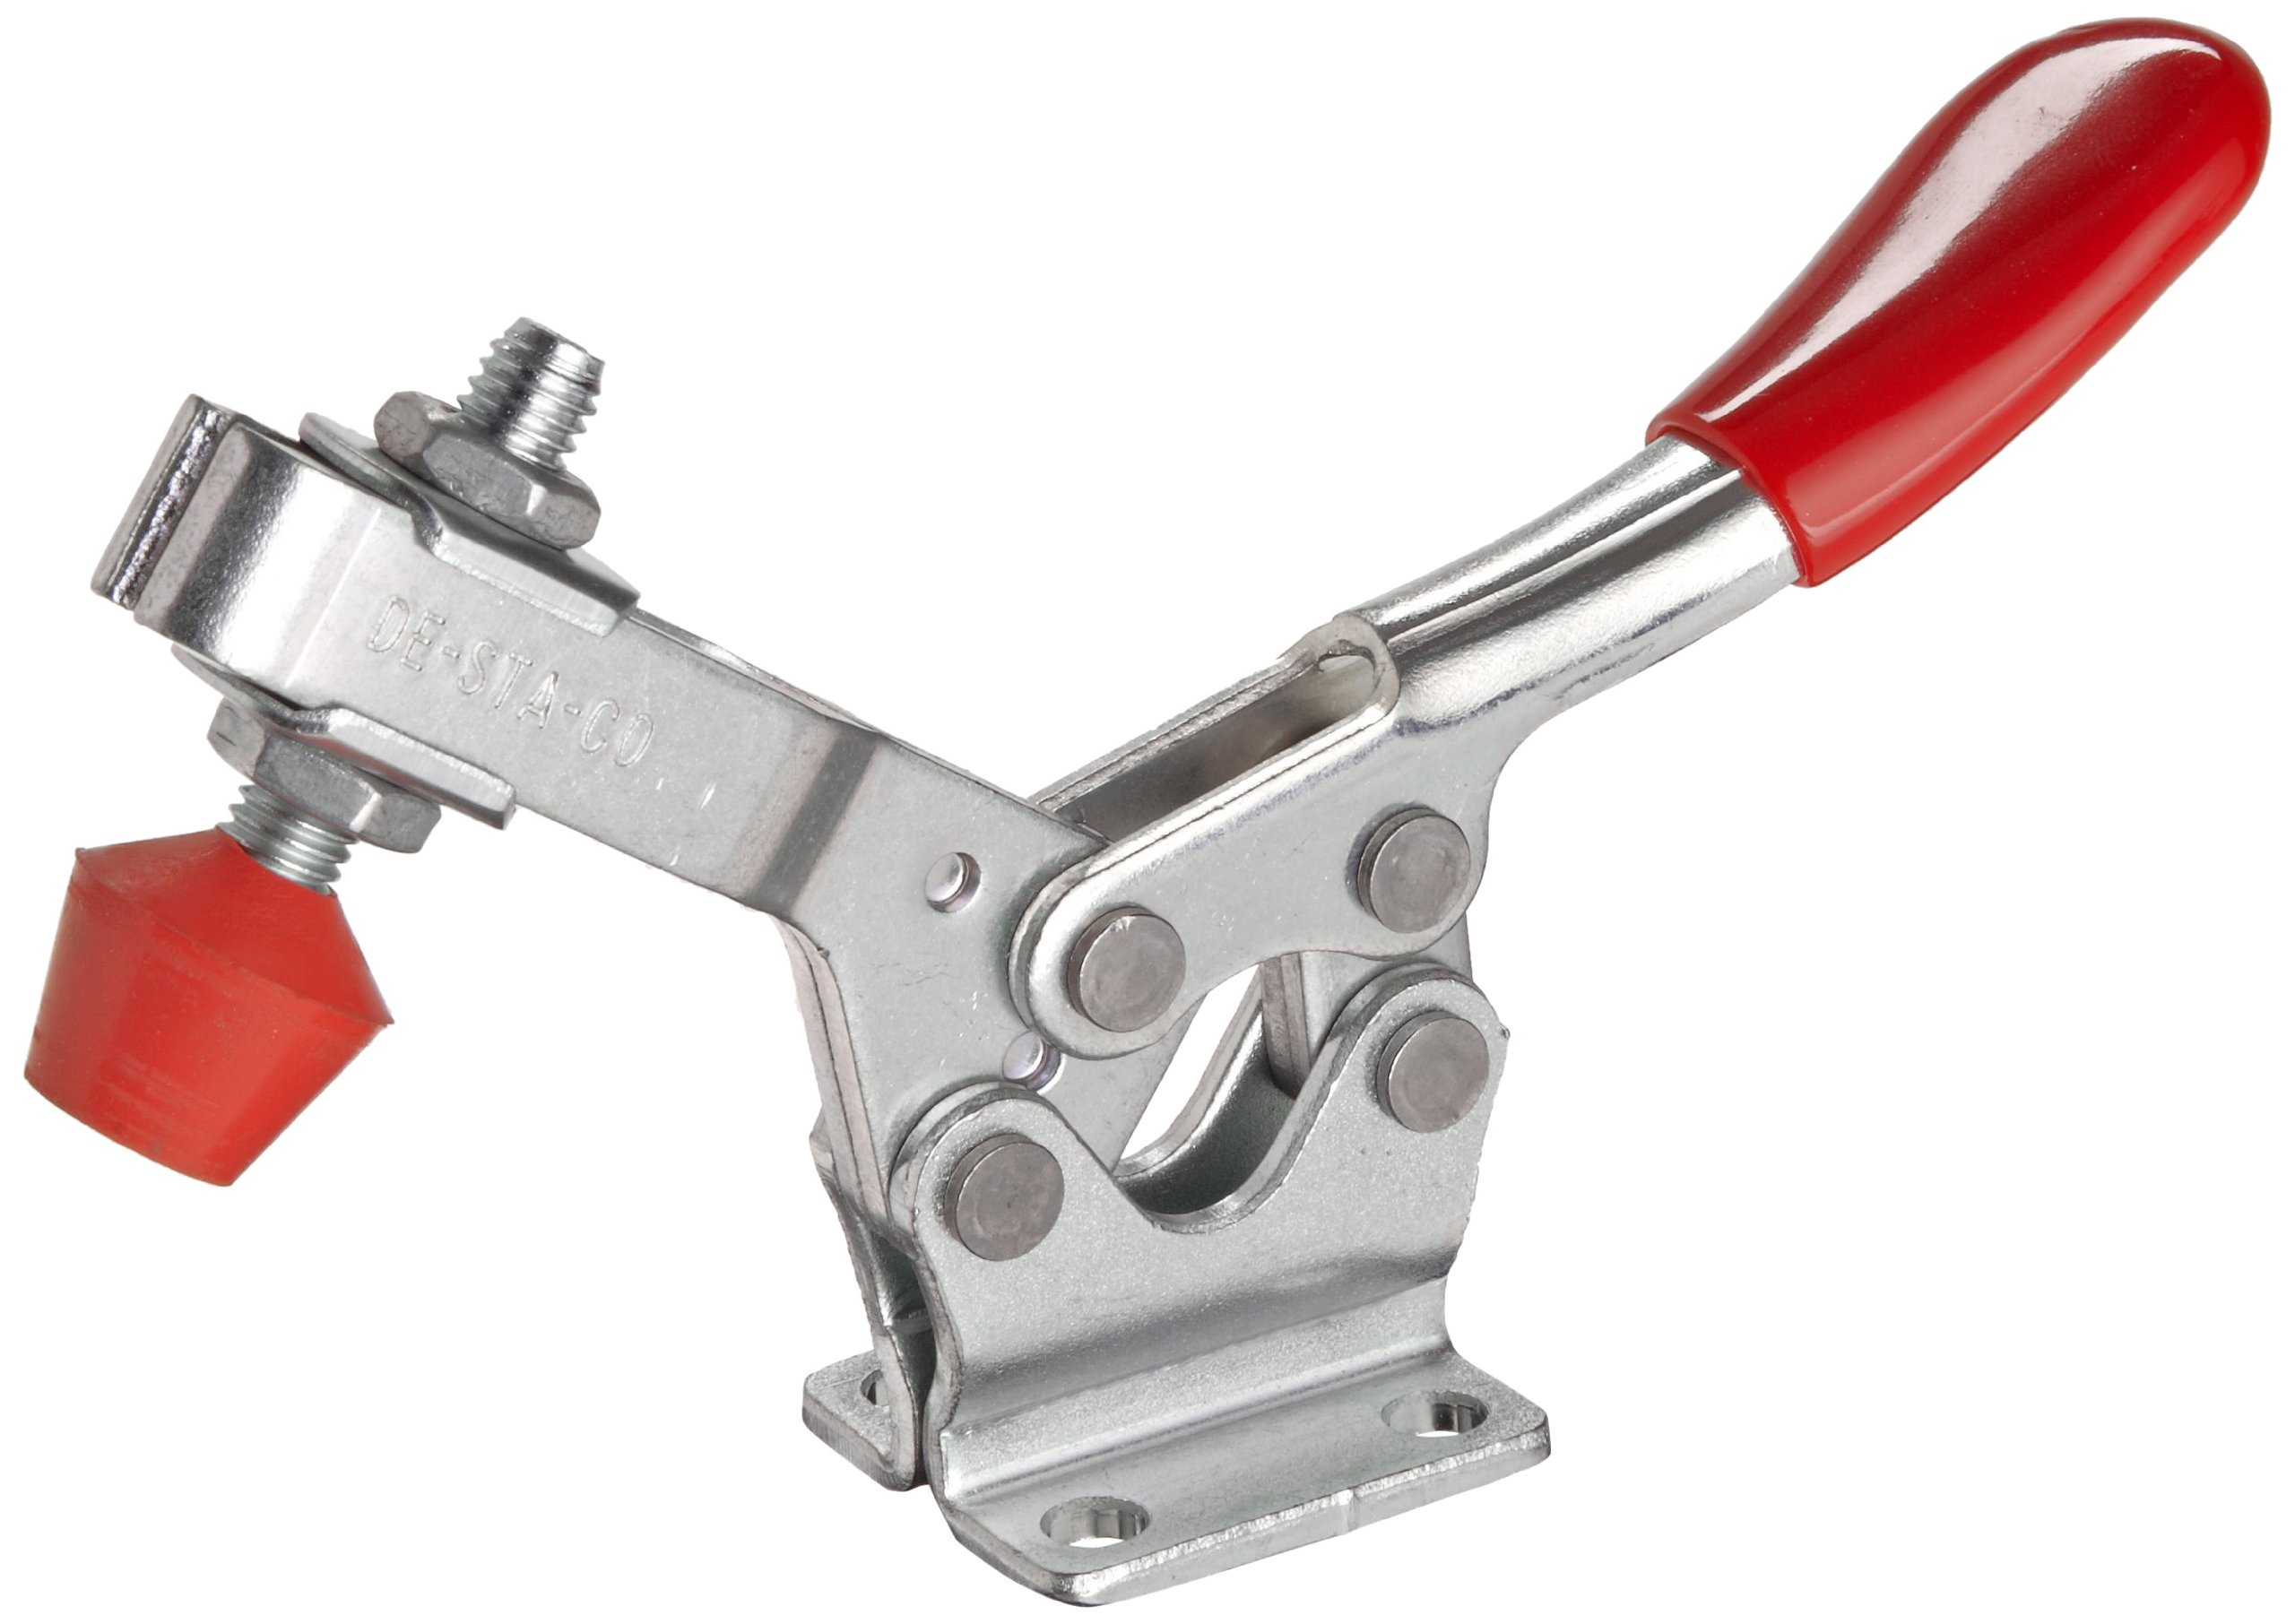 DE STA CO 225-U Horizontal Handle Hold Down Action Clamp with U-Shaped Bar and Flanged Base